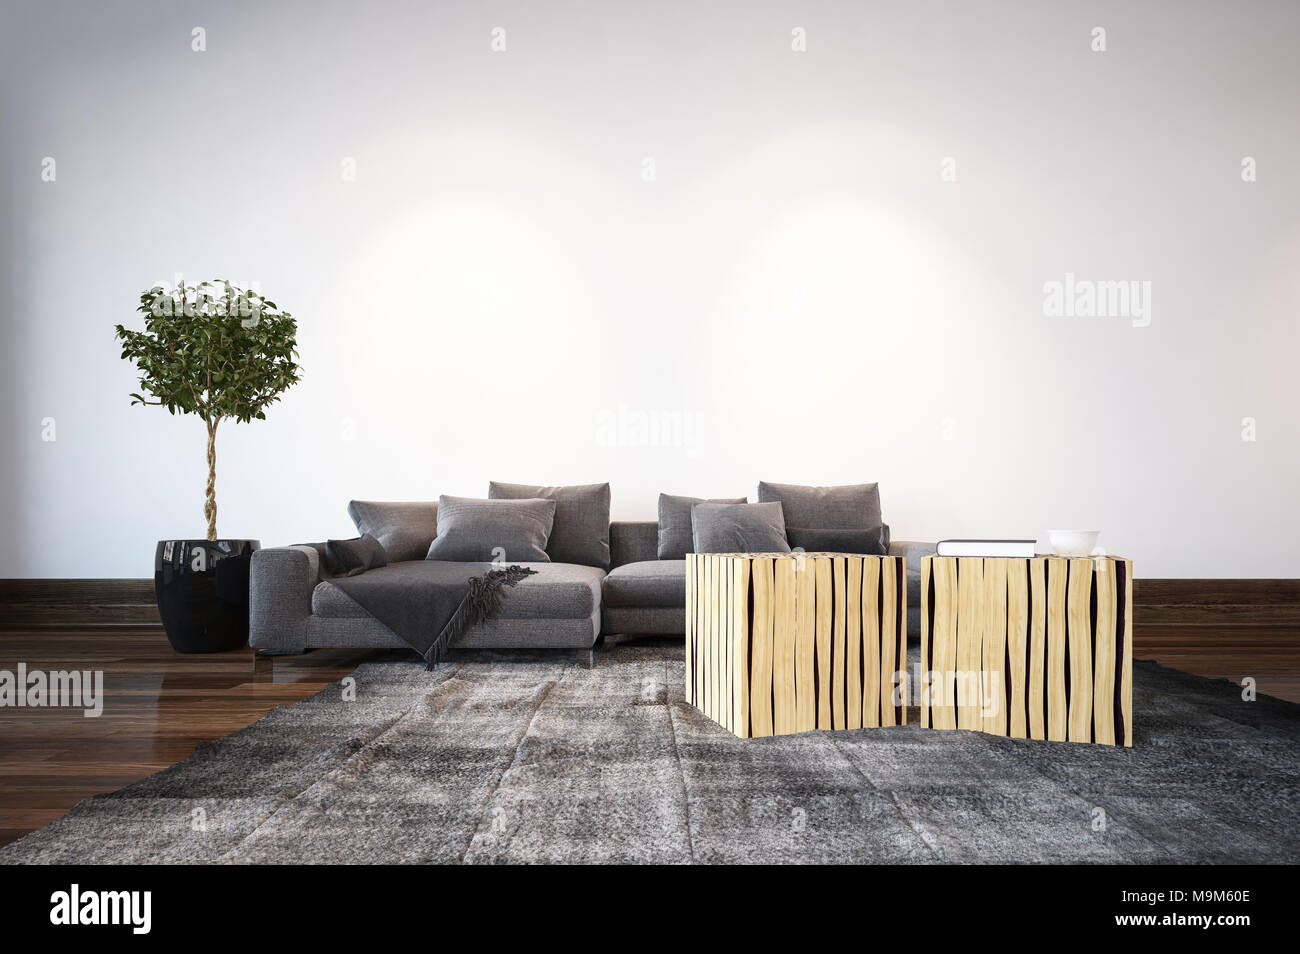 Modern Living Room With Unusual Cubic Tables And A Comfortable Grey Settee  In Front Of A Wall With Topiary Tree In A Pot. 3d Rendering